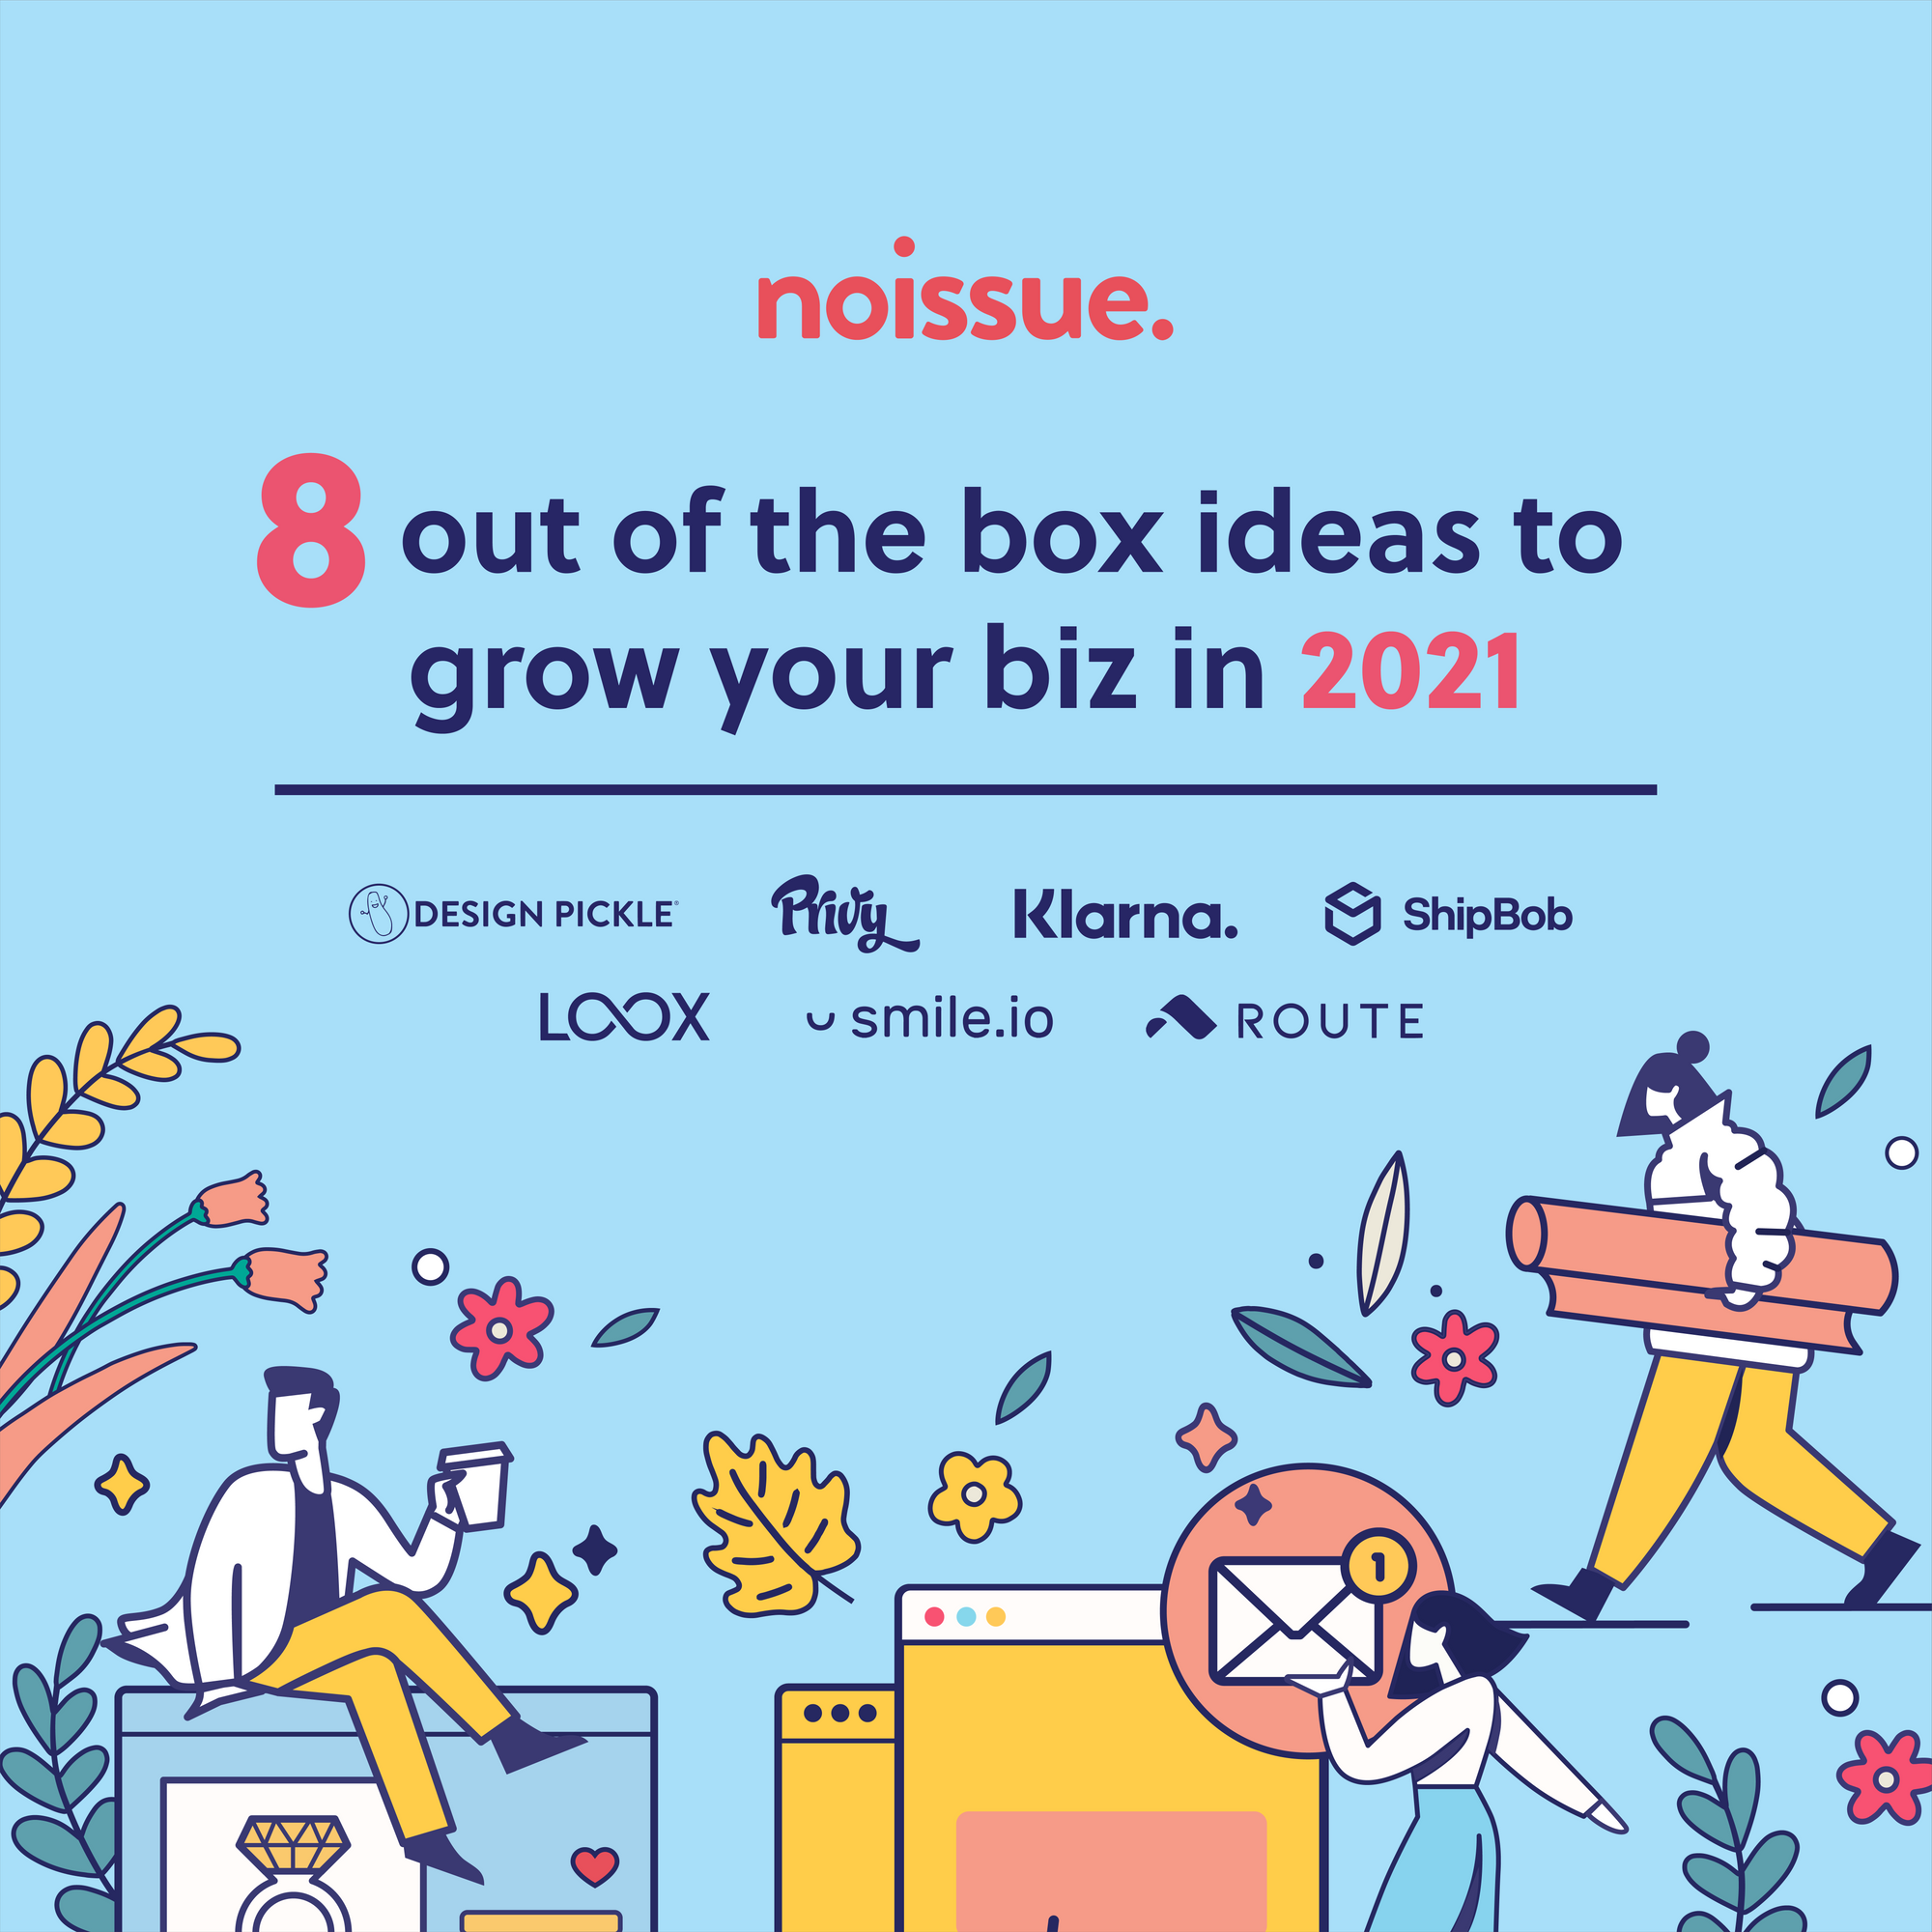 8 Out of the Box Ideas to Grow Your Biz in 2021